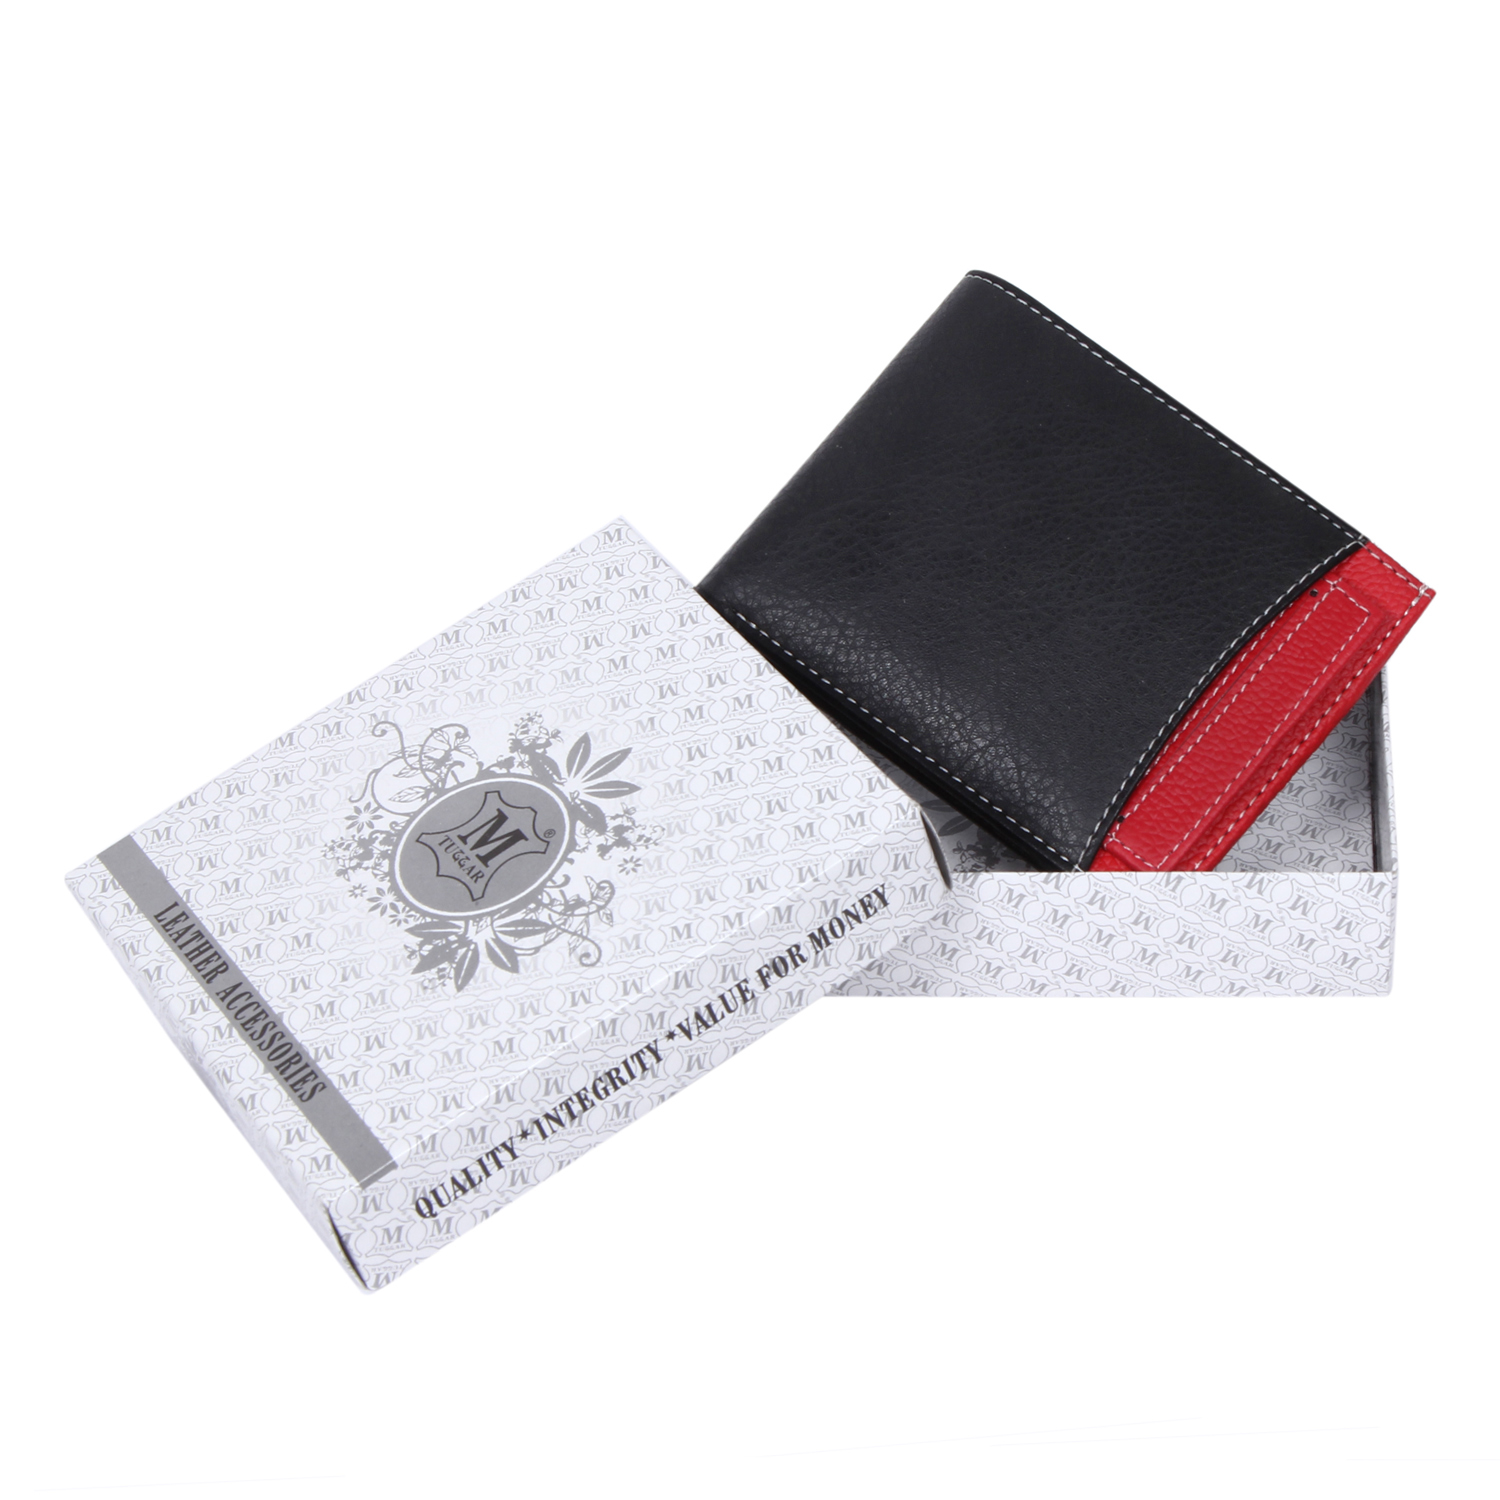 Mtuggar Men's Wallet Black Red1651  Synthetic leather/Rexine